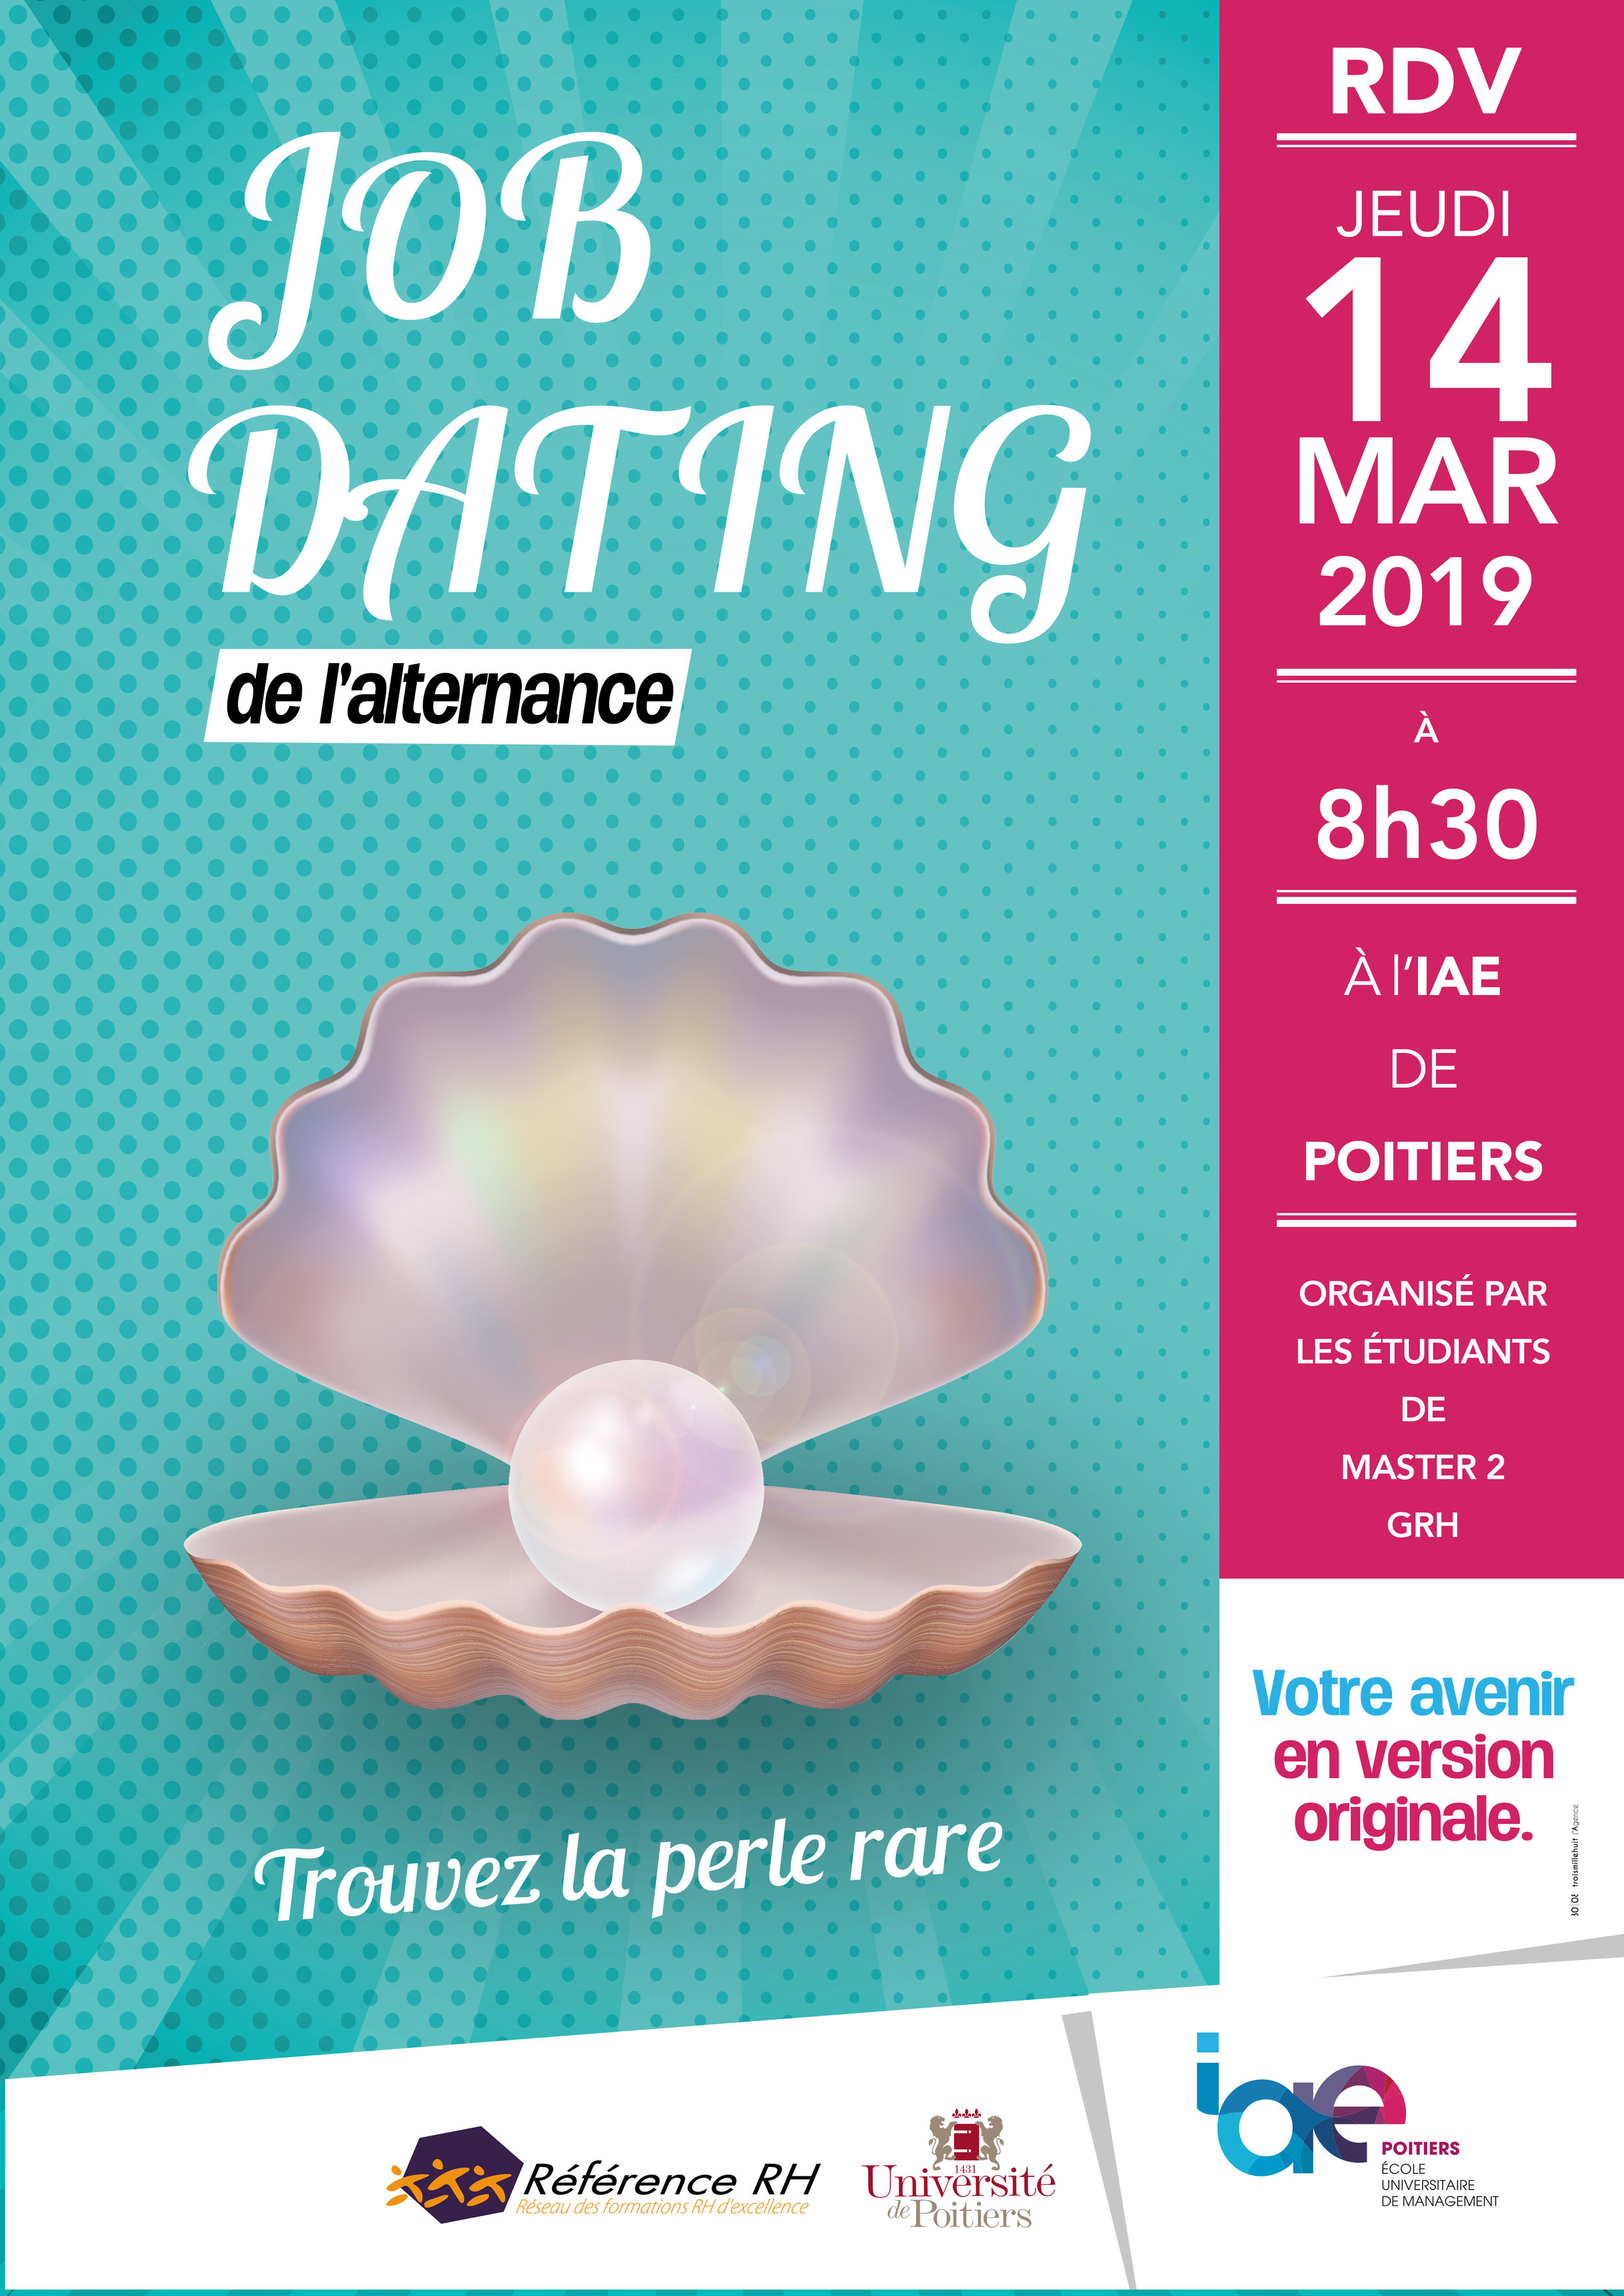 Affiche Poitiers job dating 2018 - PERLE_VF.jpg